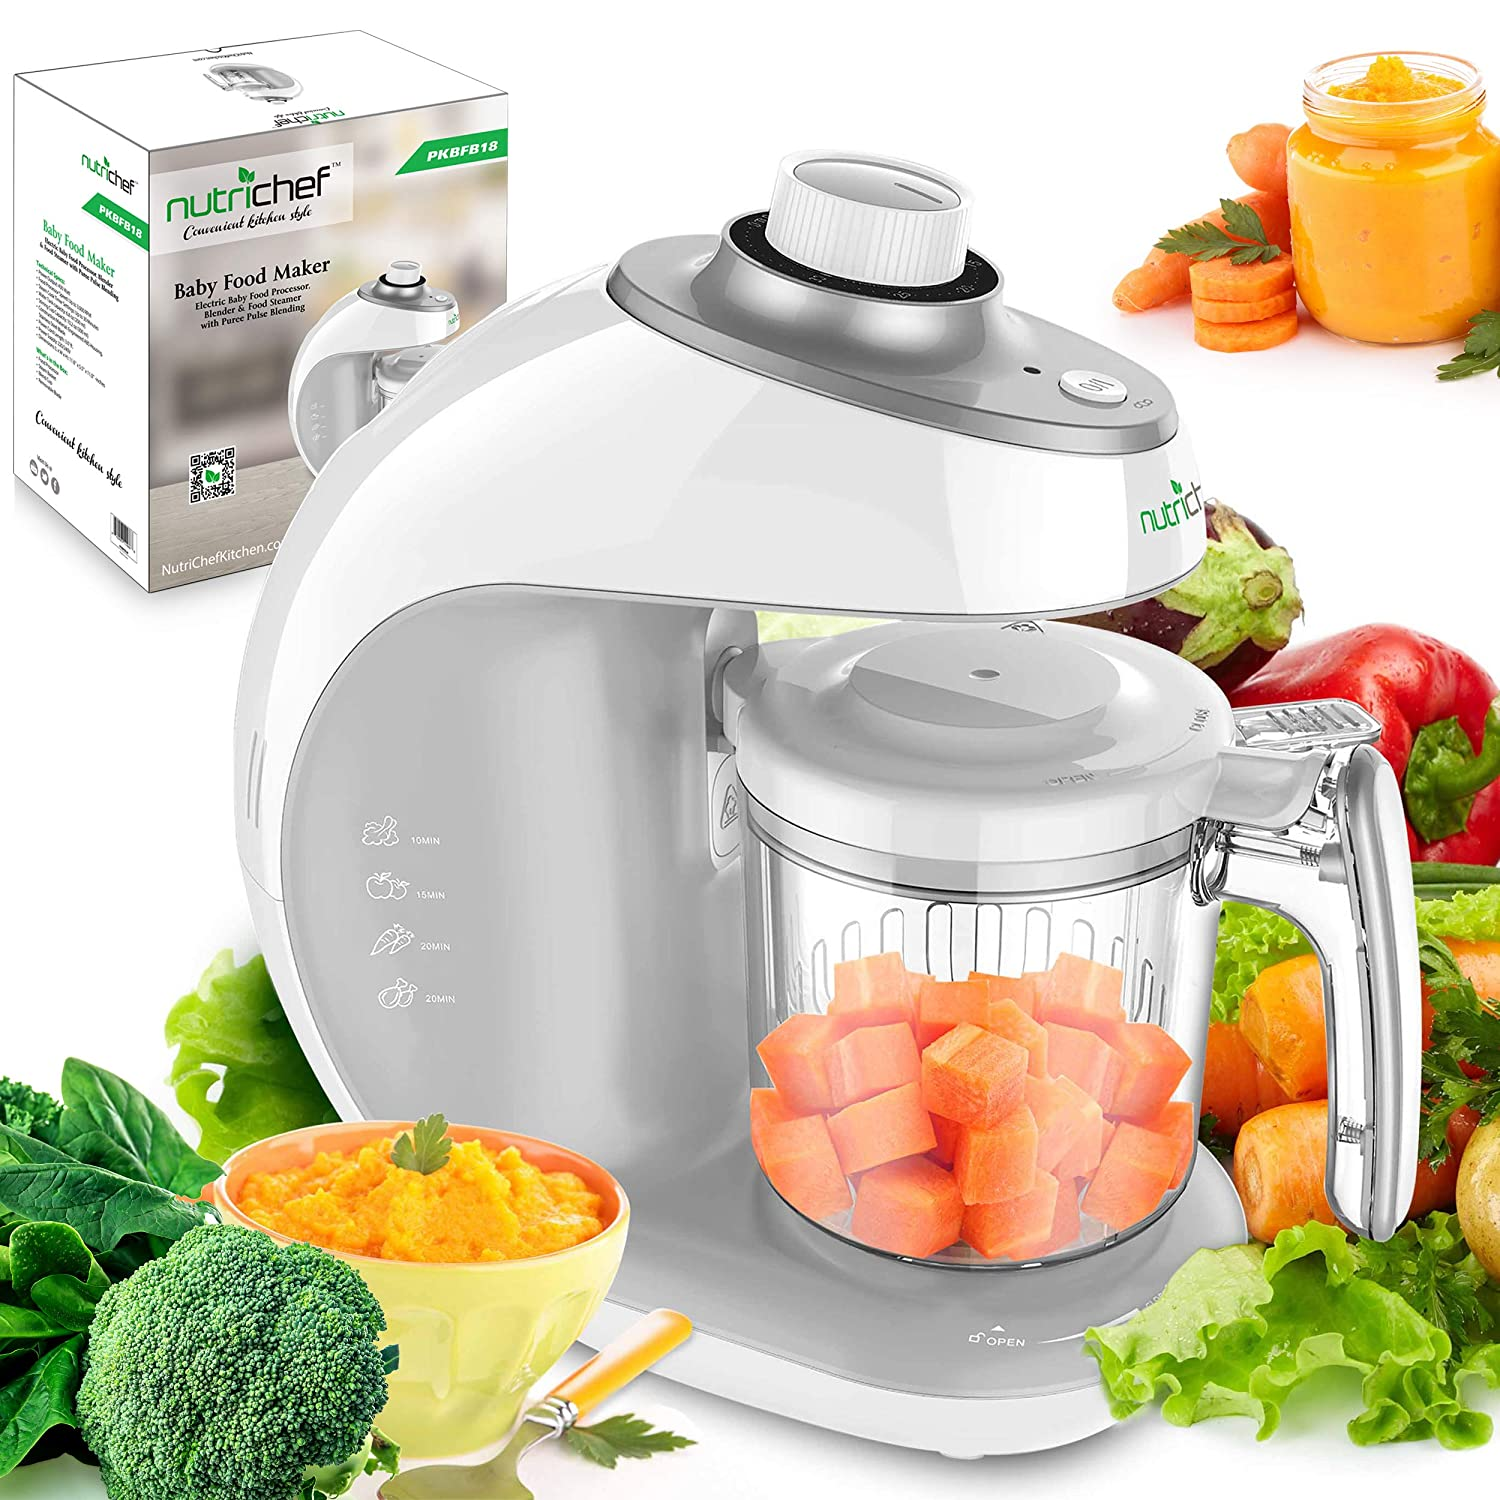 NutriChef Digital Baby Food Maker Machine - 2-in-1 Steamer Cooker and Puree Blender Baby Food Processor with Steam Timer - Steam, Blend Organic Homemade Food for Newborn Babies, Infants, Toddlers